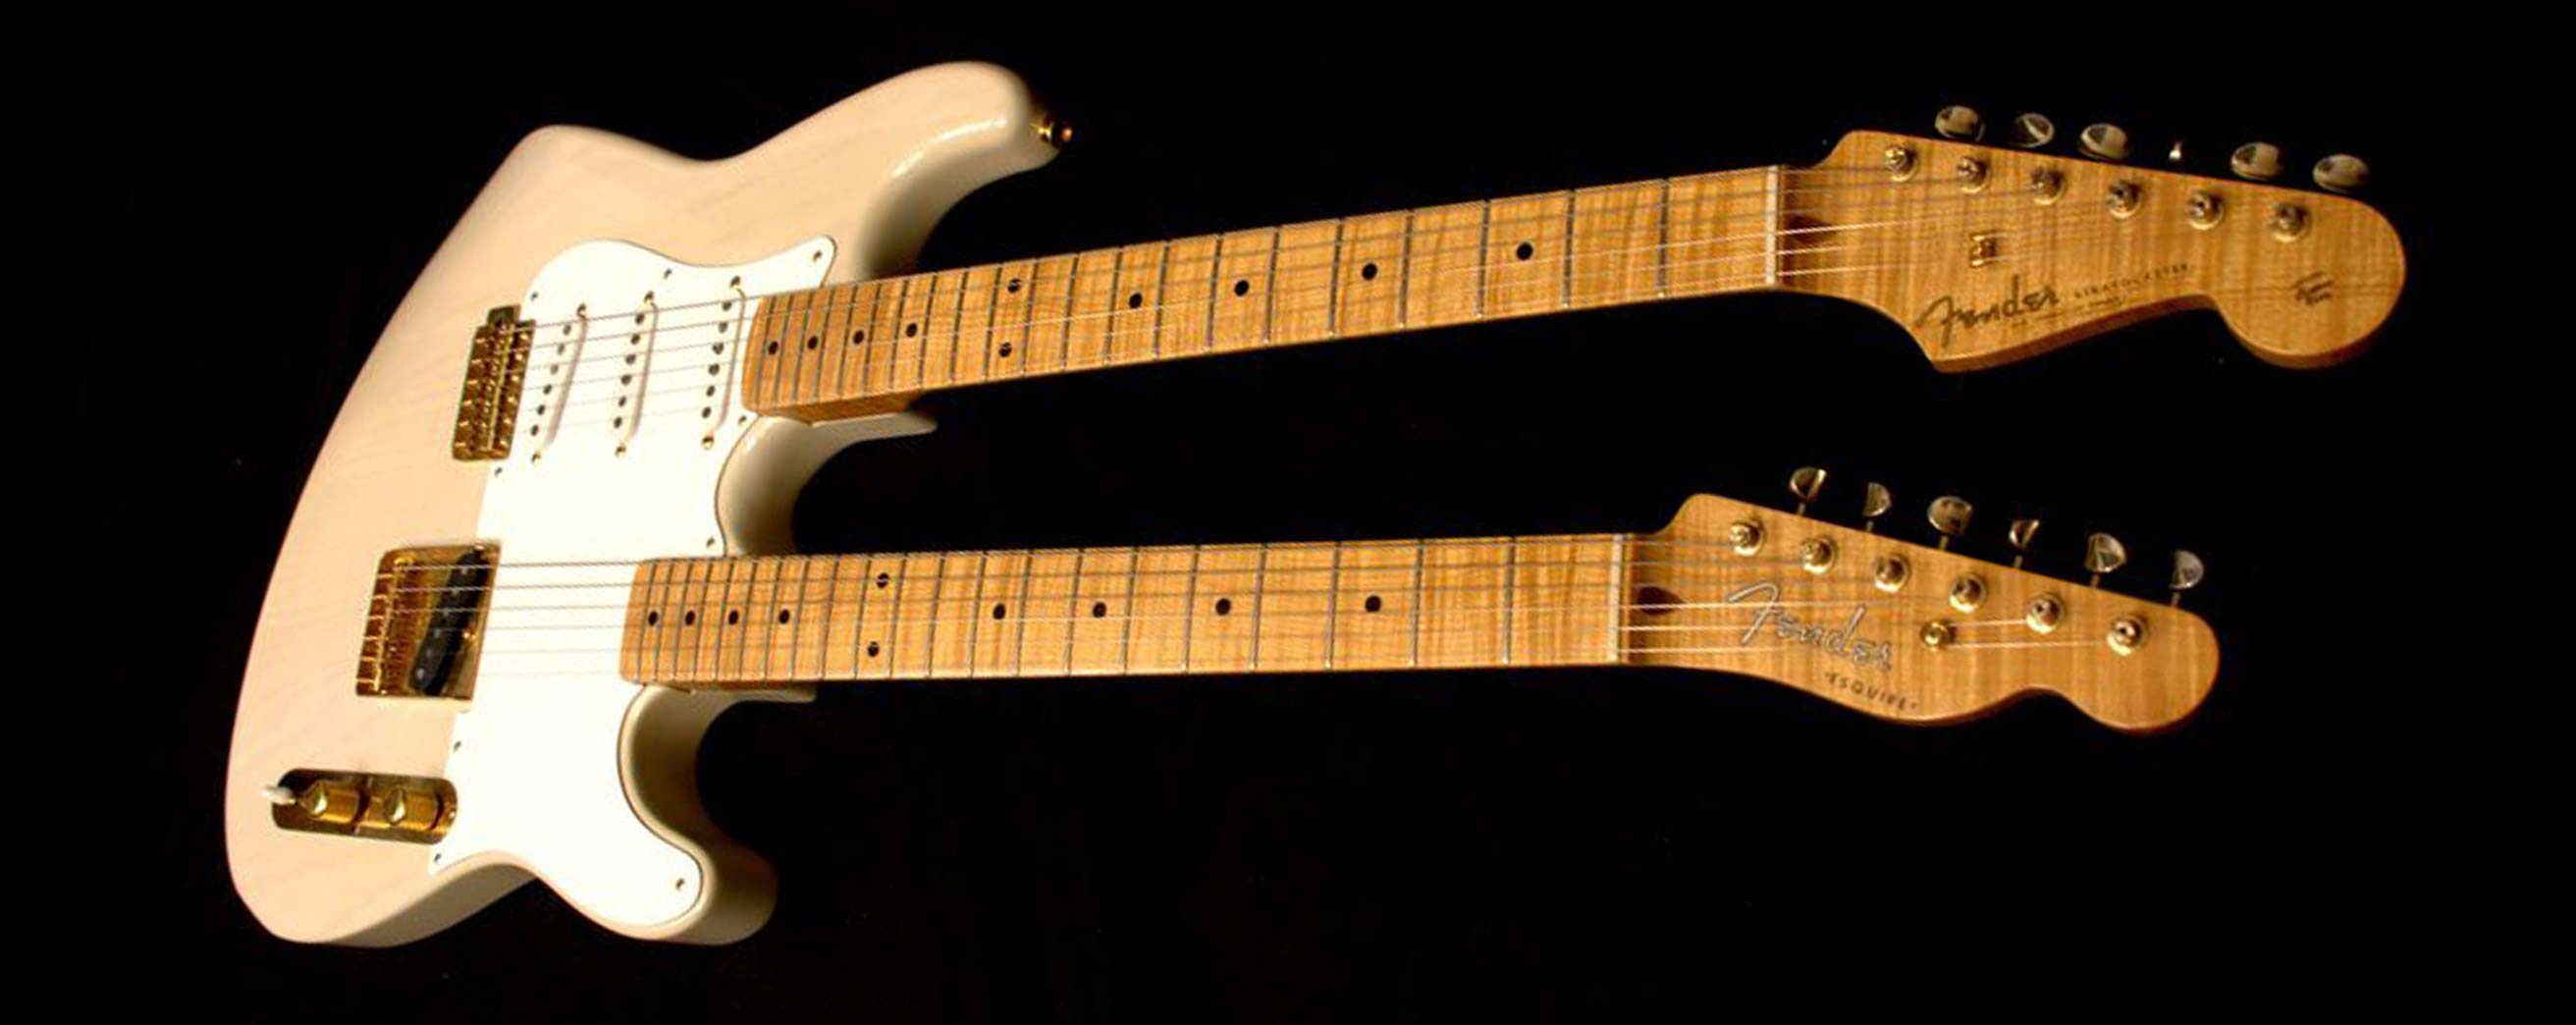 Original Master Builder Michael Stevens' unique Stratocaster/Esquire is widely known to be the Custom Shop's first build.